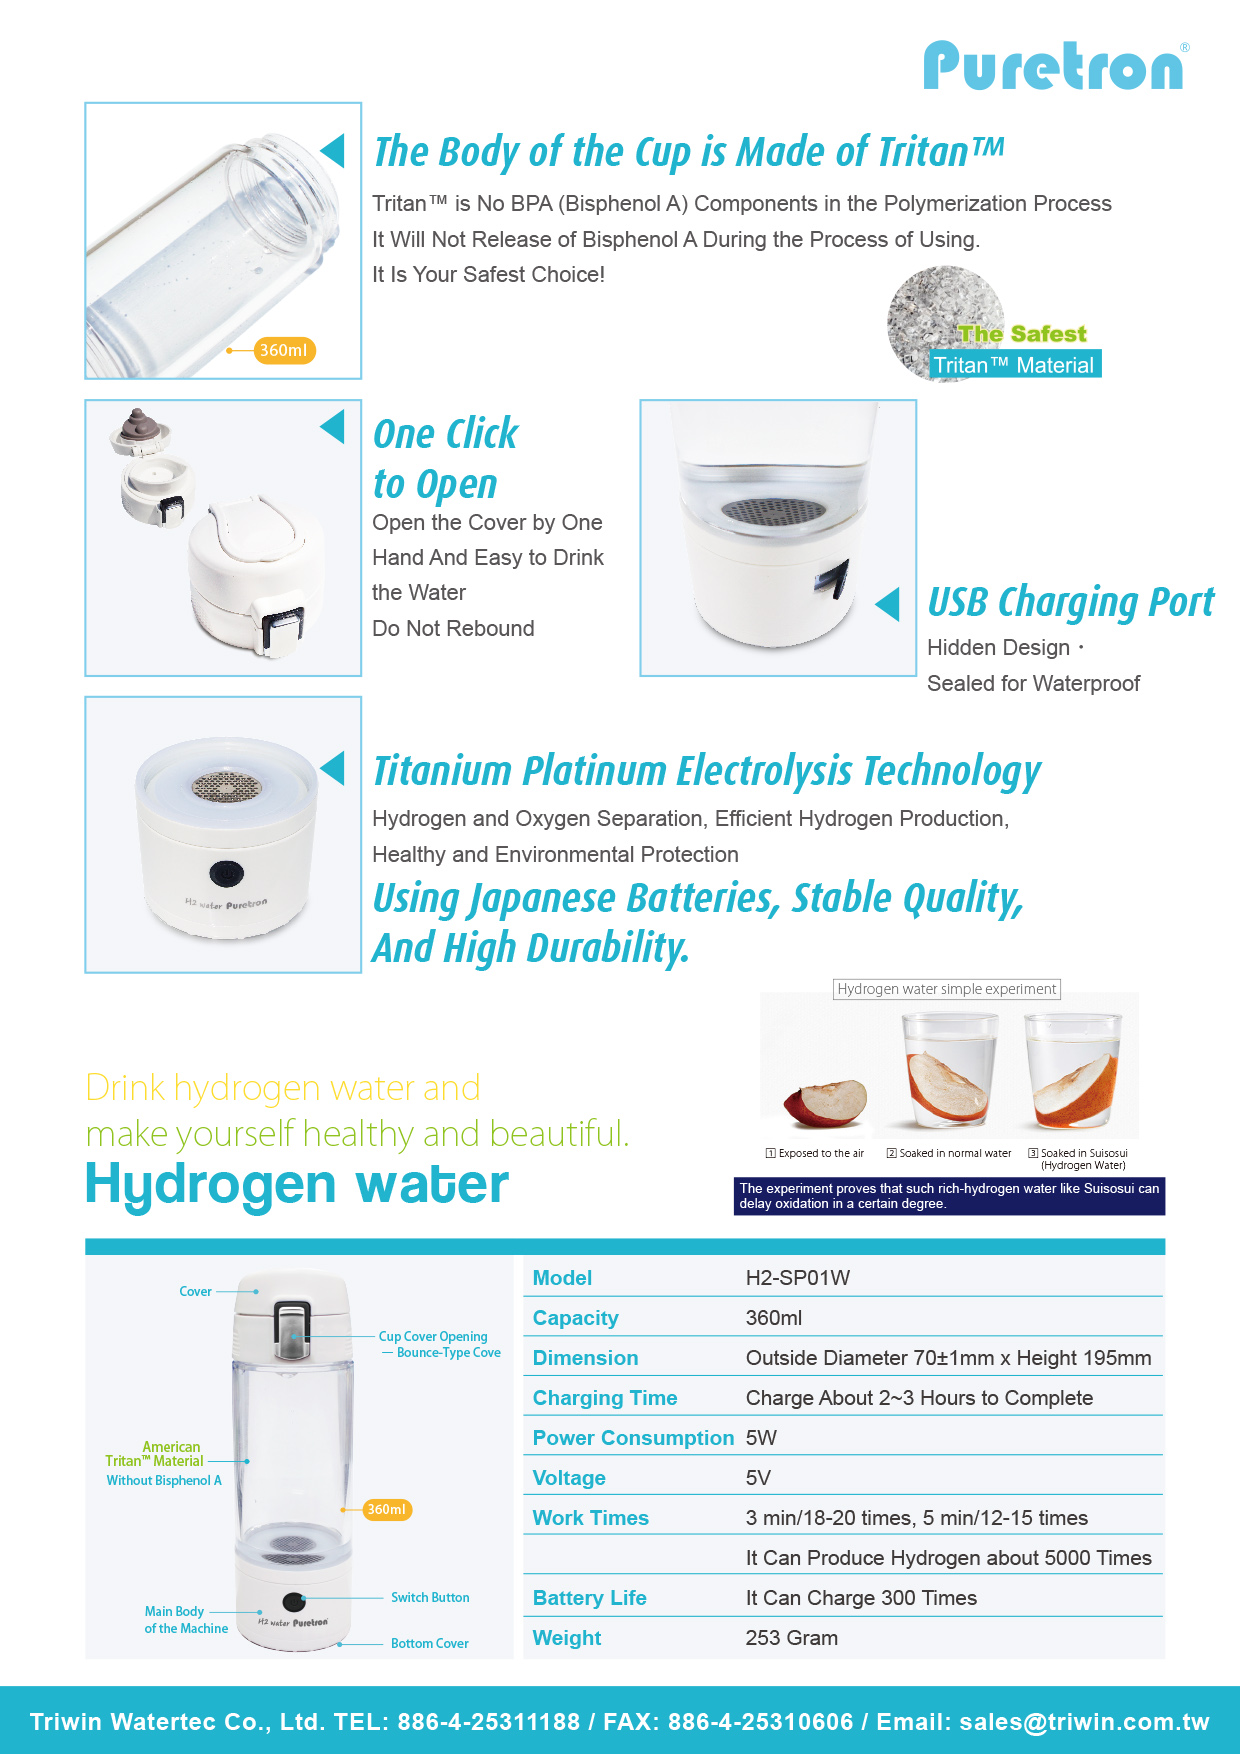 H2-SP01W Hydrogen water bottle.